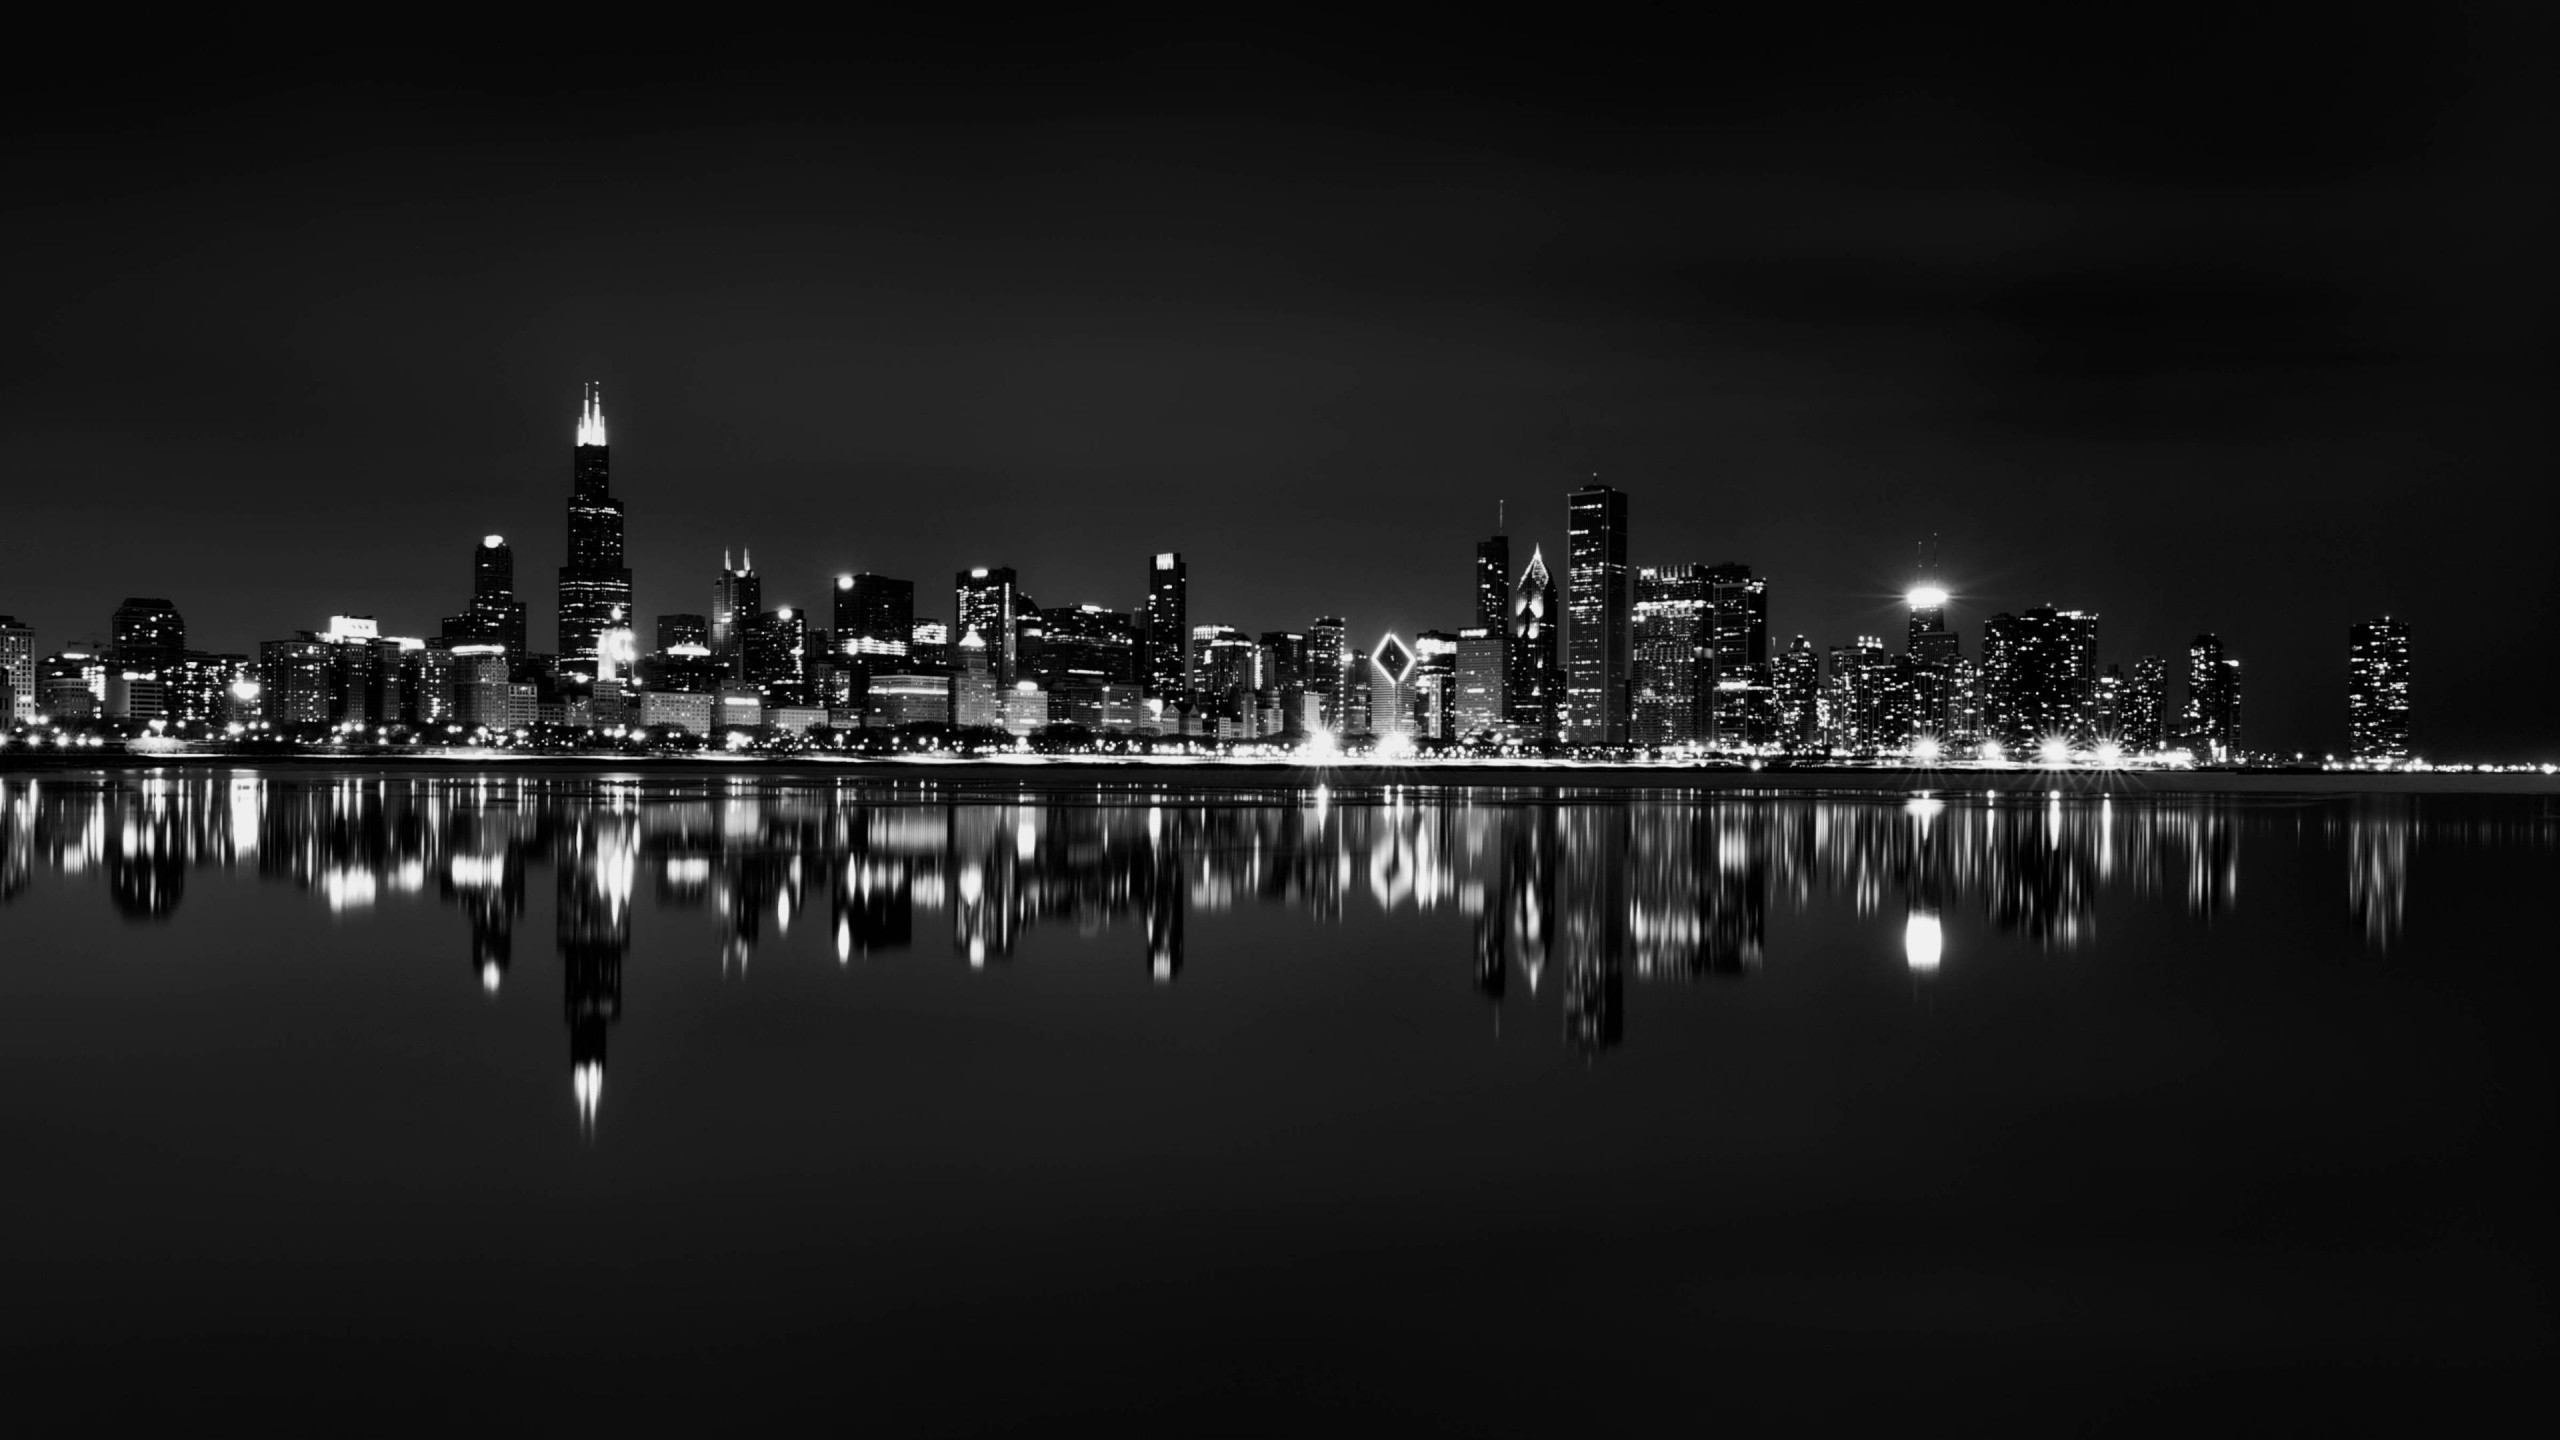 2560x1440 Chicago Skyline Backgrounds